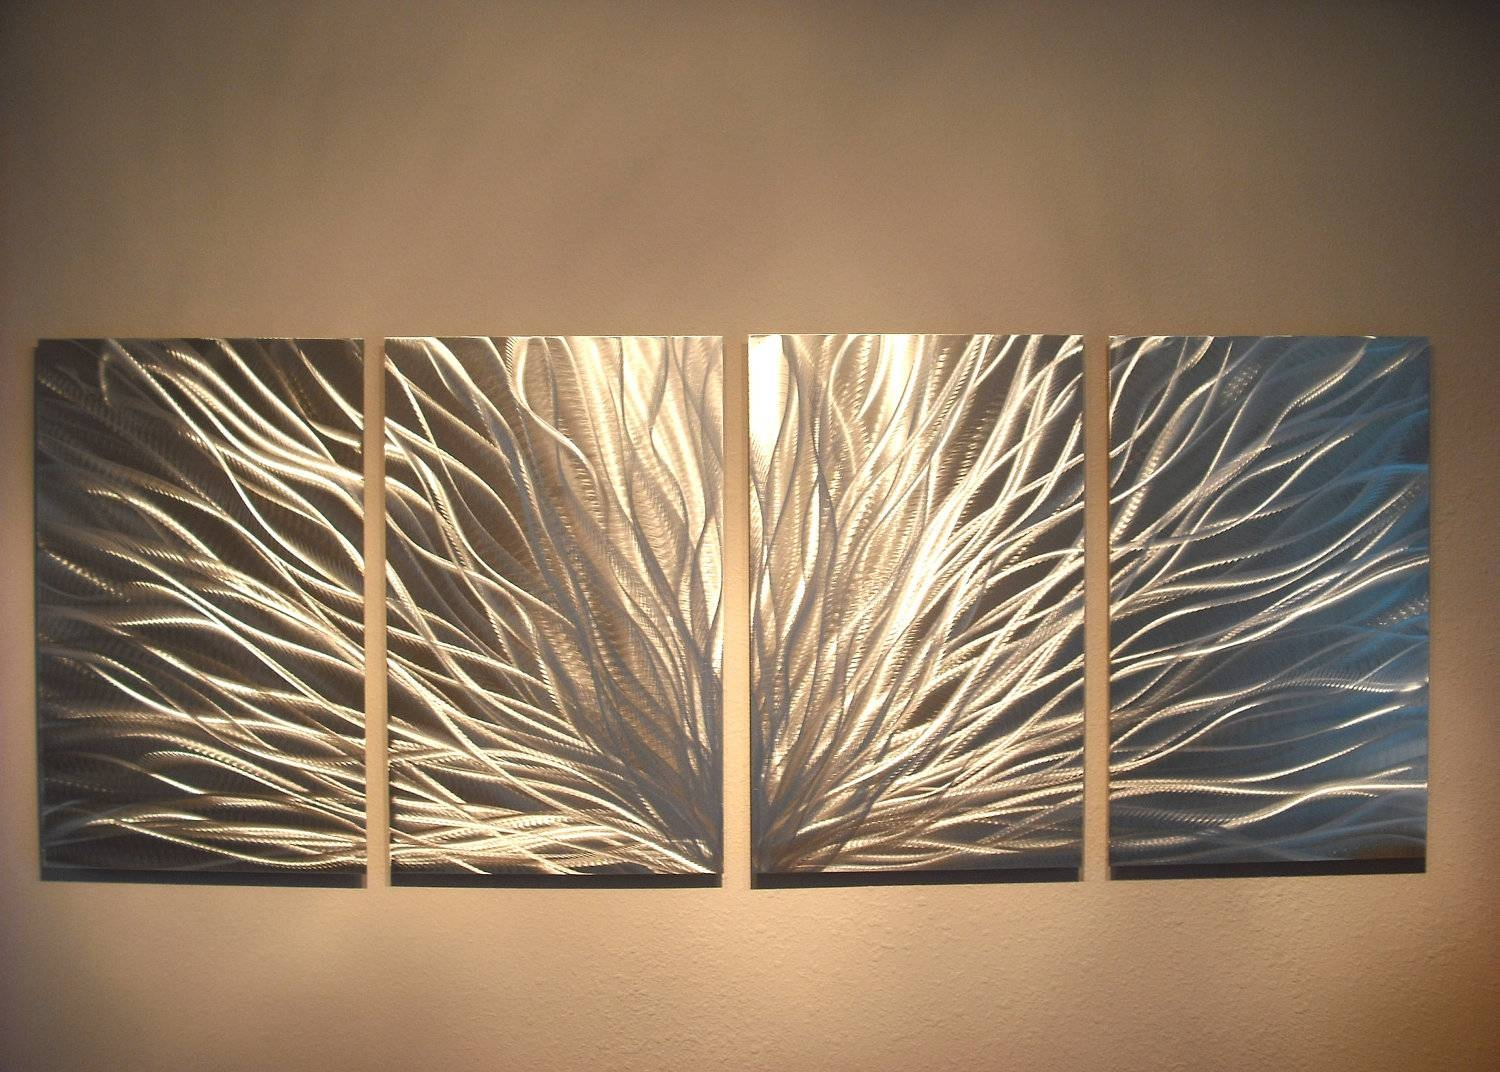 Radiance – Abstract Metal Wall Art Contemporary Modern Decor Pertaining To Most Recent Big Metal Wall Art (Gallery 2 of 15)